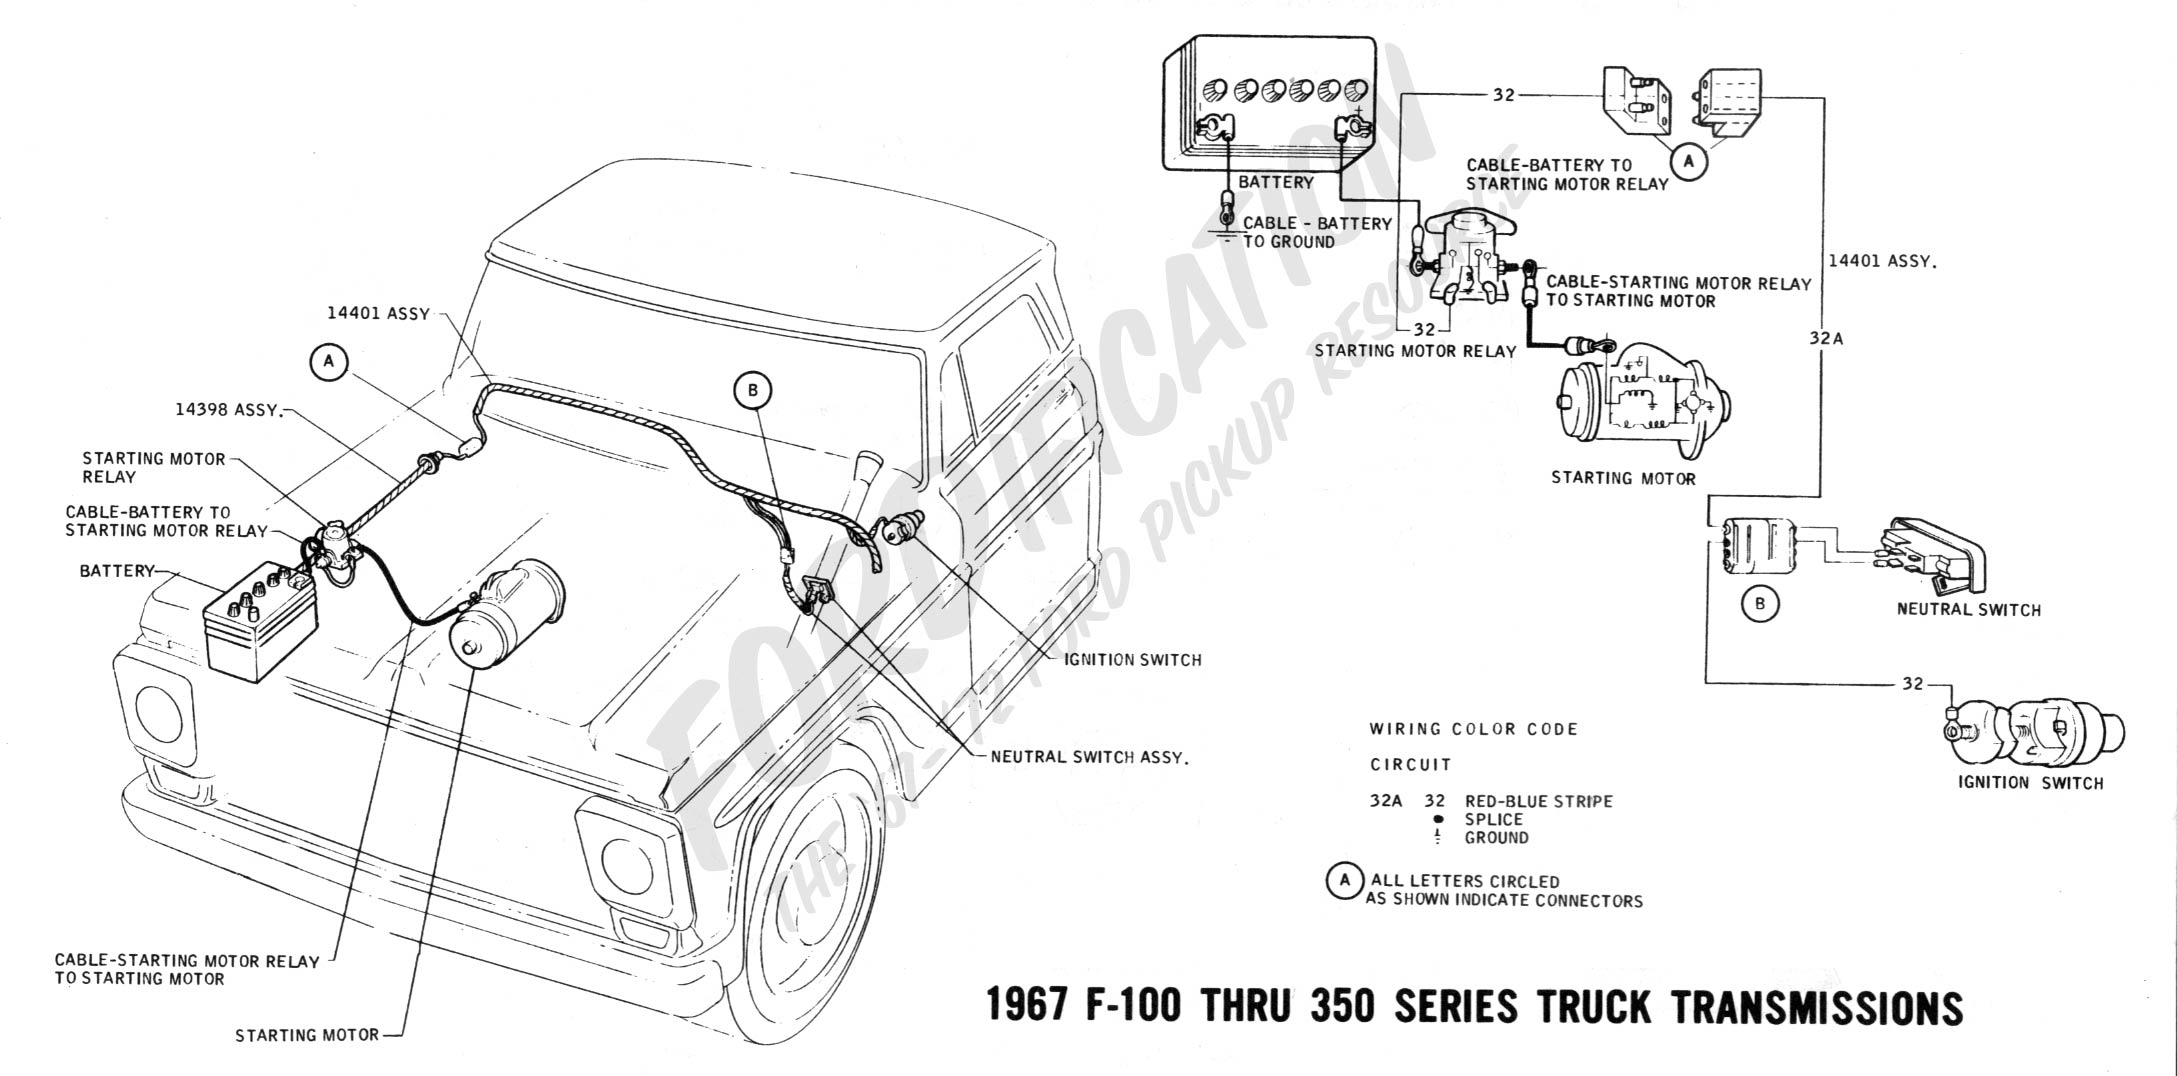 Schematics h in addition Schematics e further 381103 99 Es300 O2 Sensor Or Air Fuel Ratio Sensor additionally 945387 2000 F 350 Power Mirror Diagram additionally 6t93g 2006 Ford E350 Fuse Diagram Hood Dash. on 1997 ford f 250 wiring diagrams